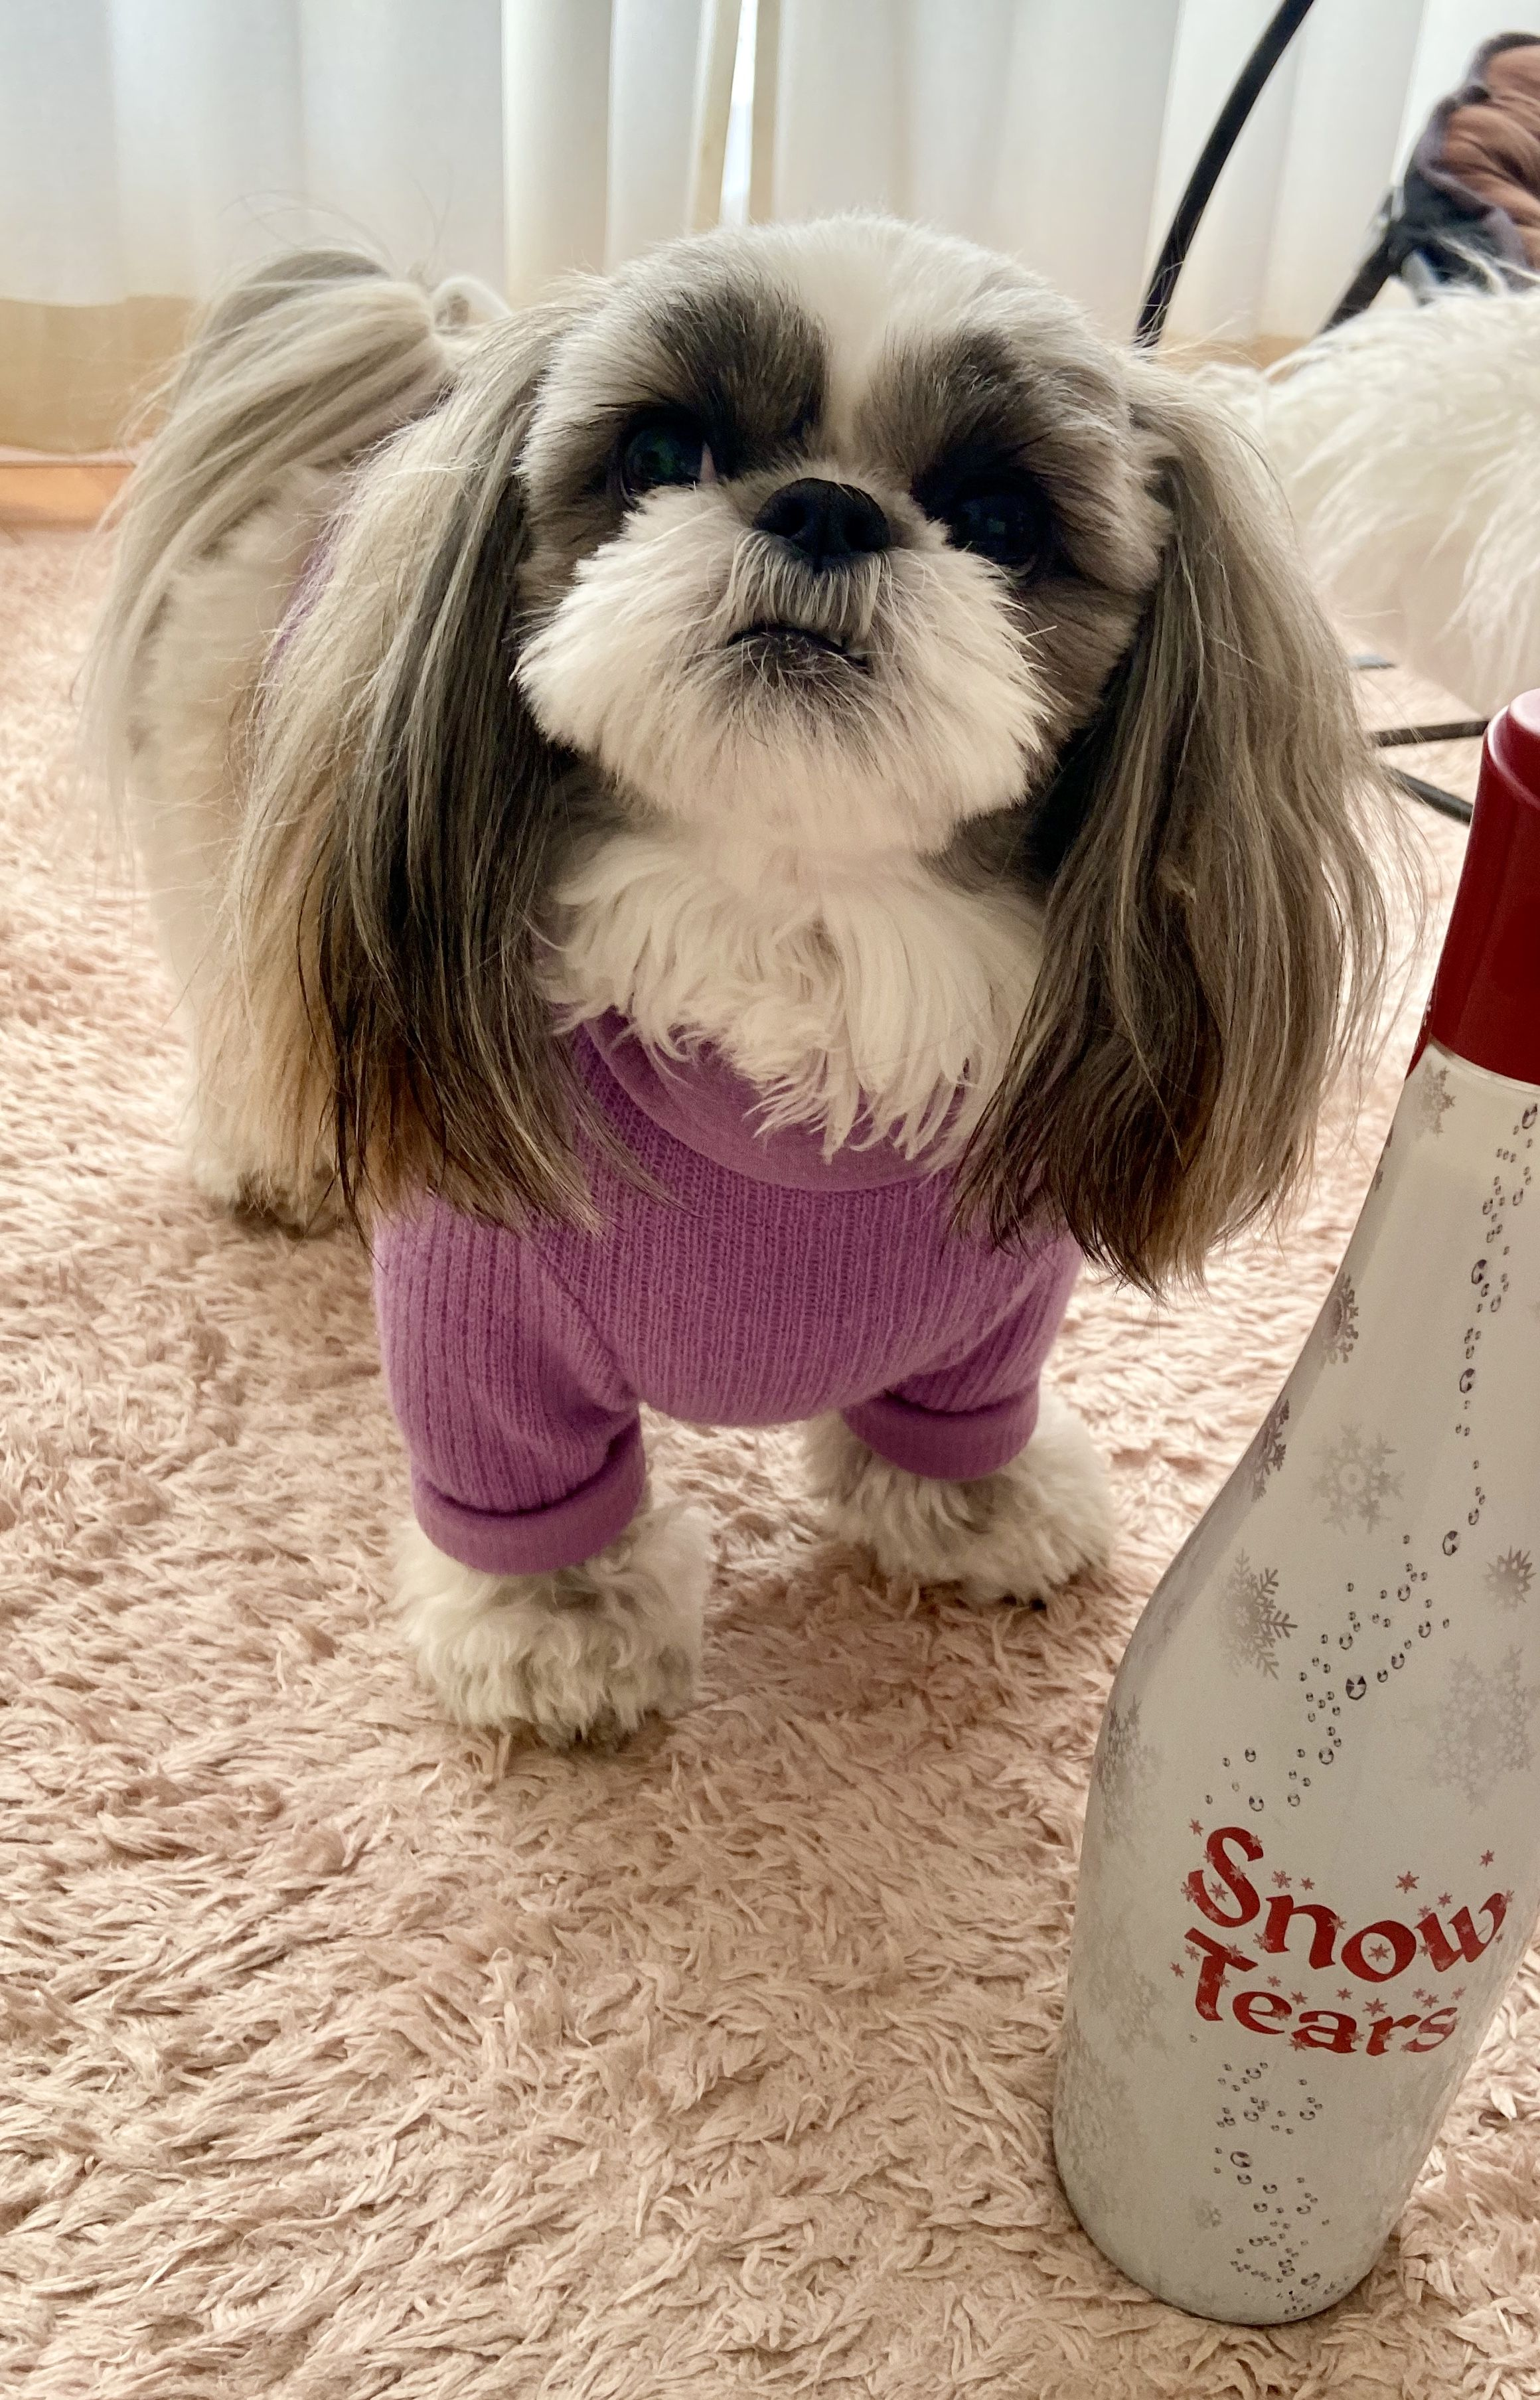 Pin By Rileyo On Cute Animals Cute Creatures Dressed Up Dogs